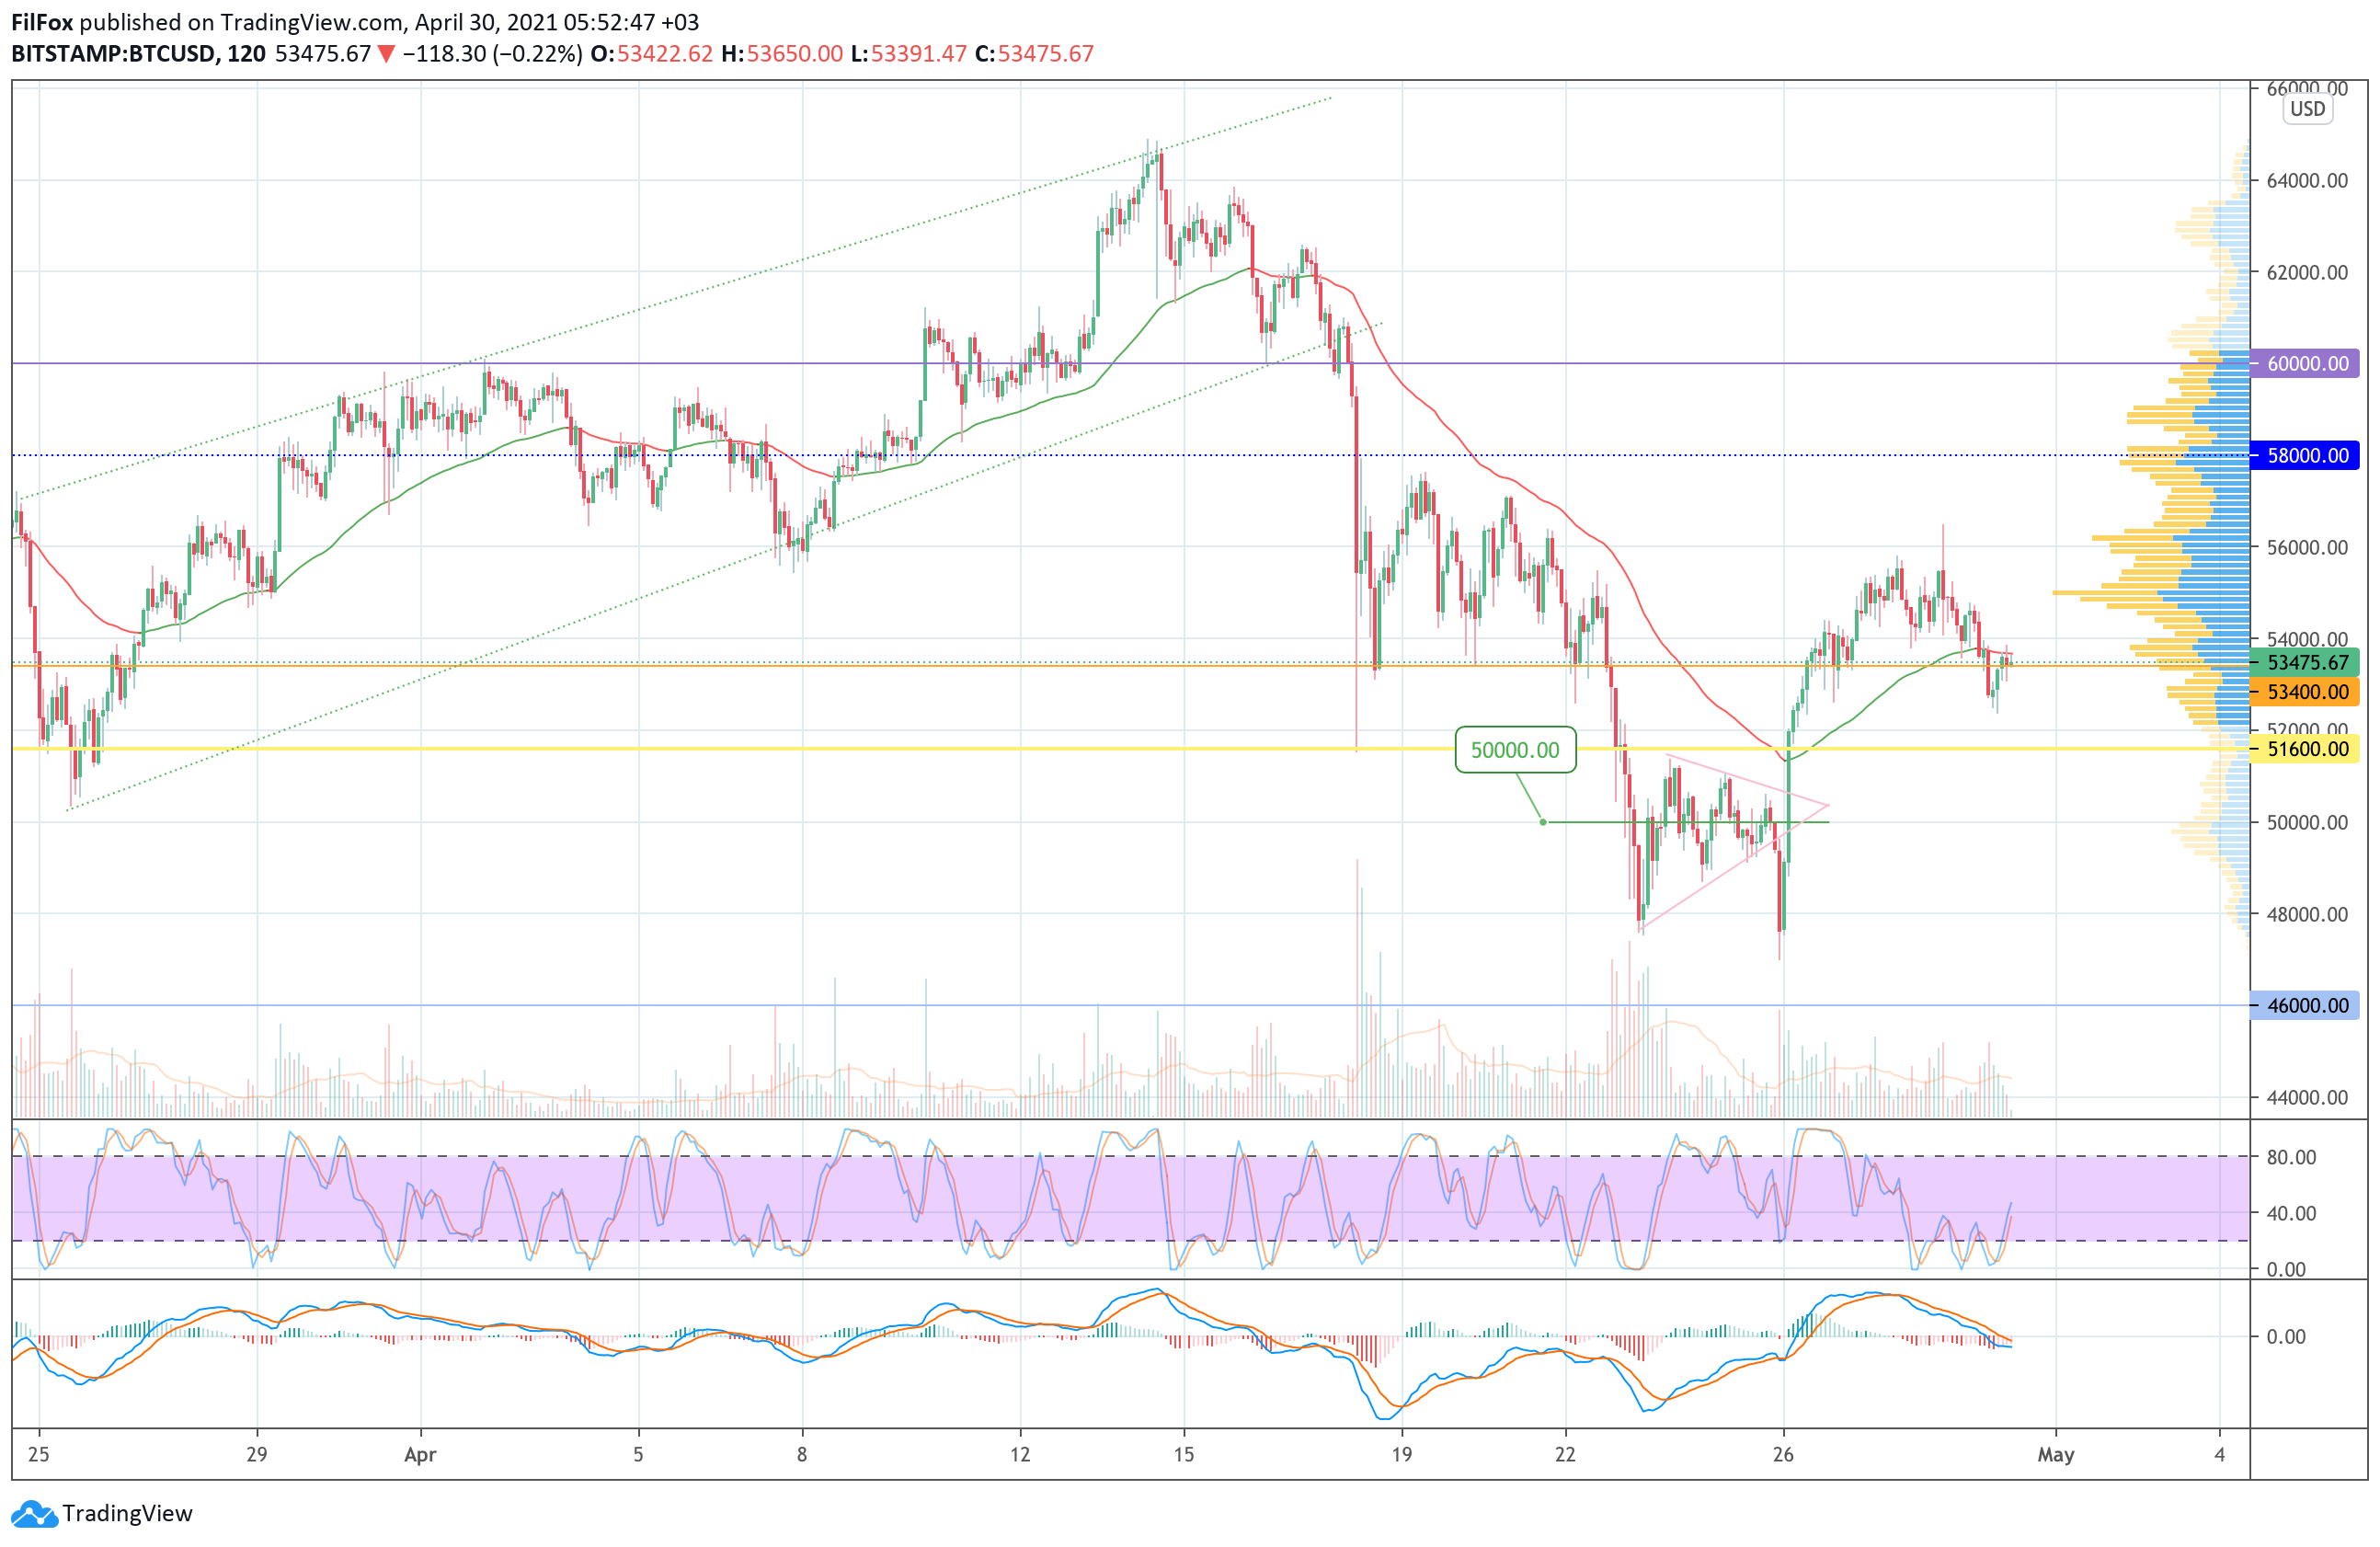 Analysis of prices for Bitcoin, Ethereum, XRP for 04/30/2021